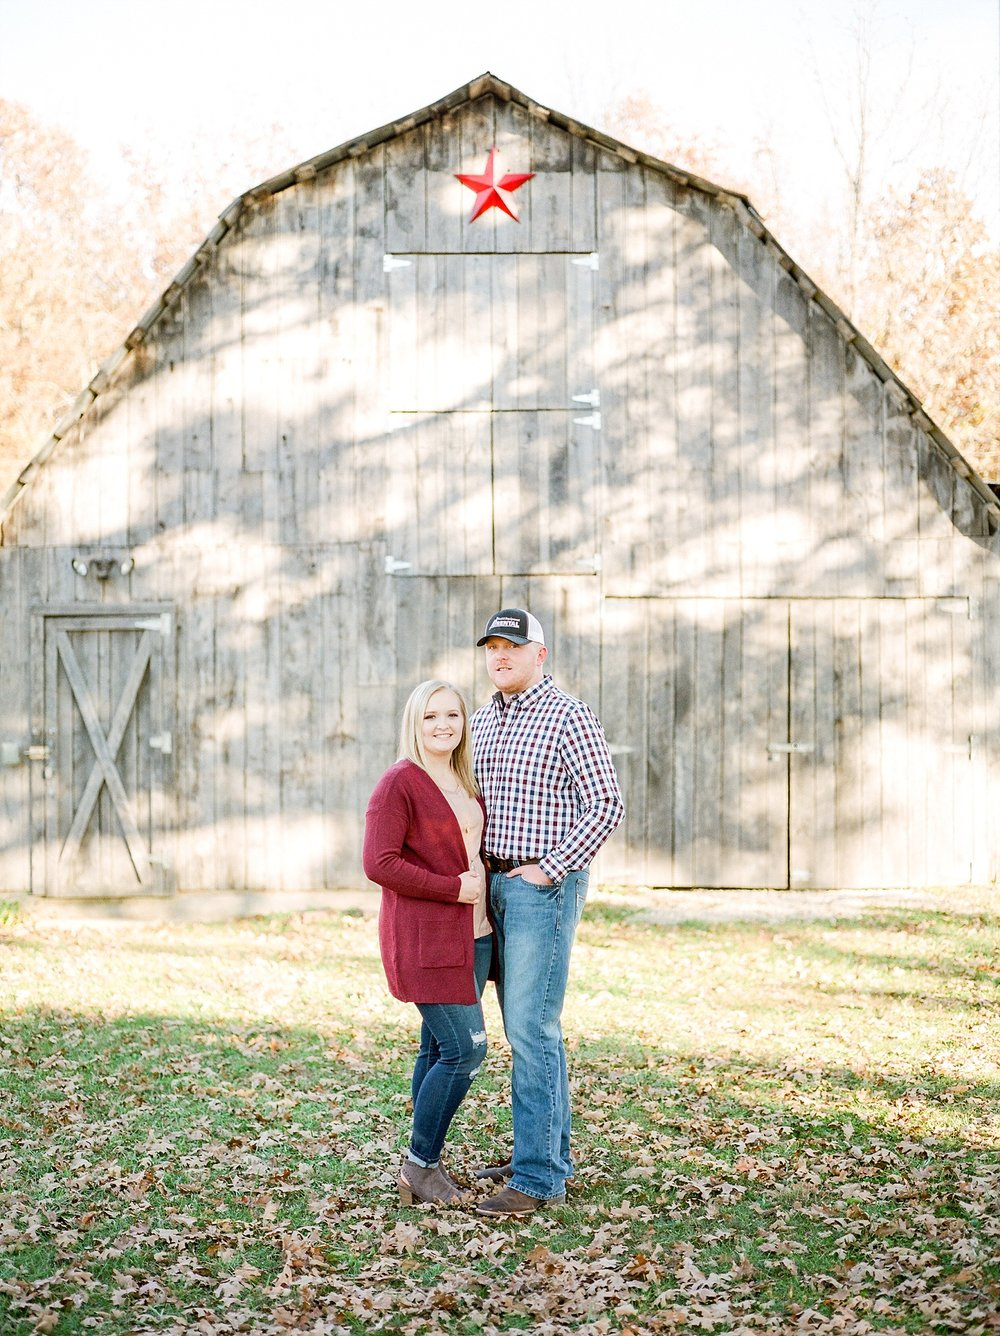 Perfect Sunset Engagement Session in Fall by Kelsi Kliethermes Photography Kansas City Missouri Wedding Photographer_0007.jpg